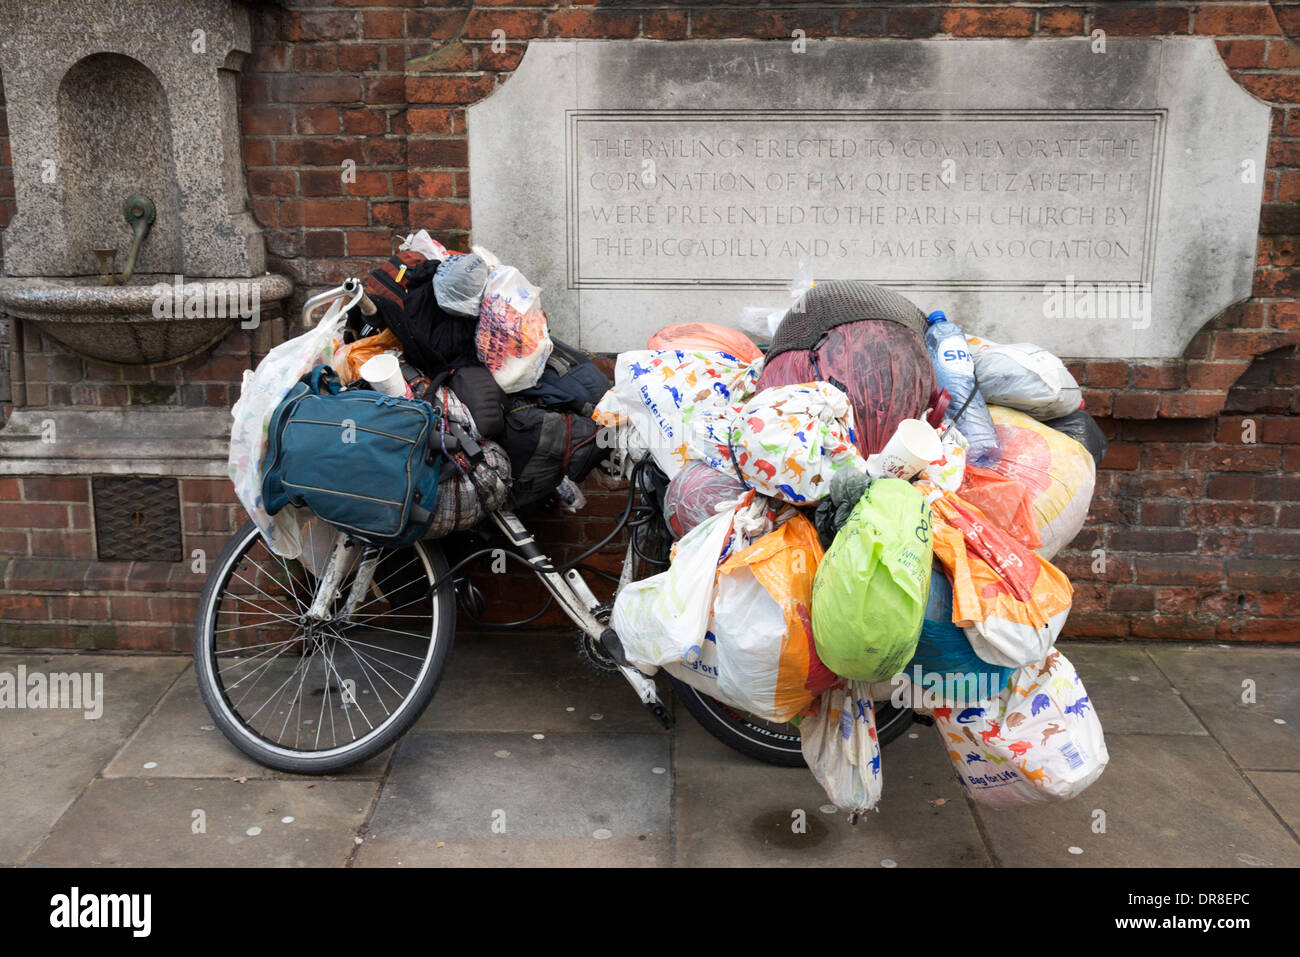 Bicycle with carrier bags of stuff belonging to a homeless person, London, England, UK - Stock Image